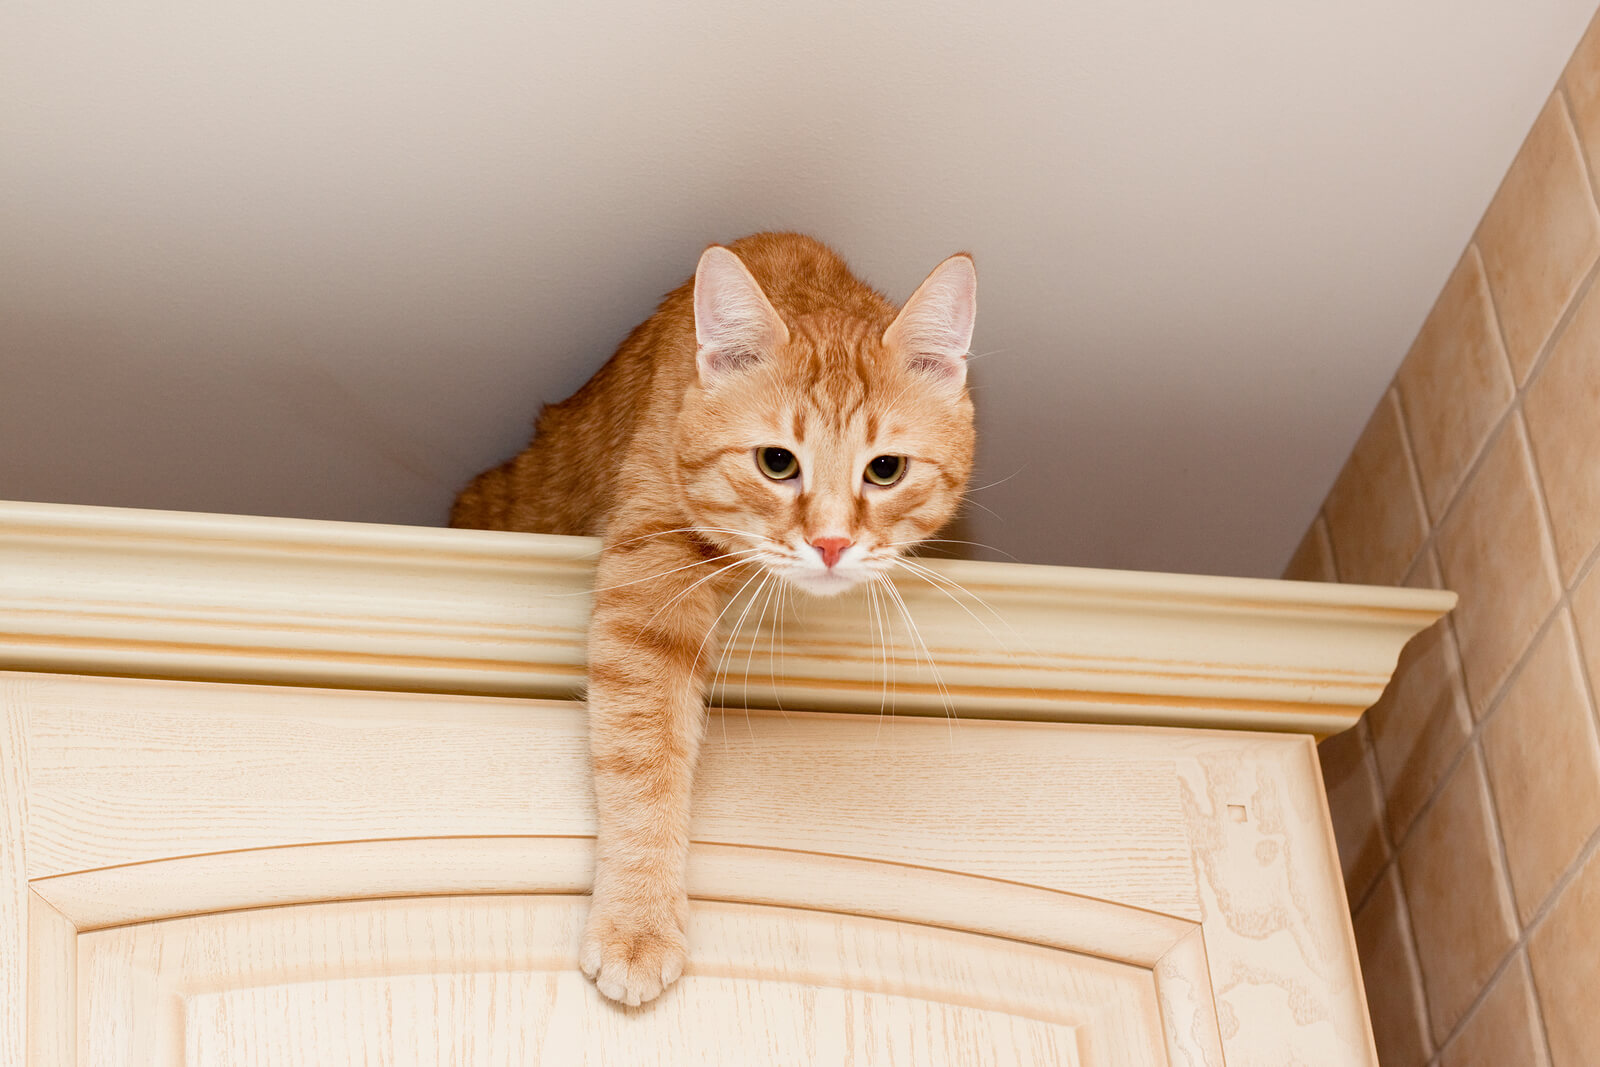 A young ginger tabby cat on top of a kitchen cabinet.